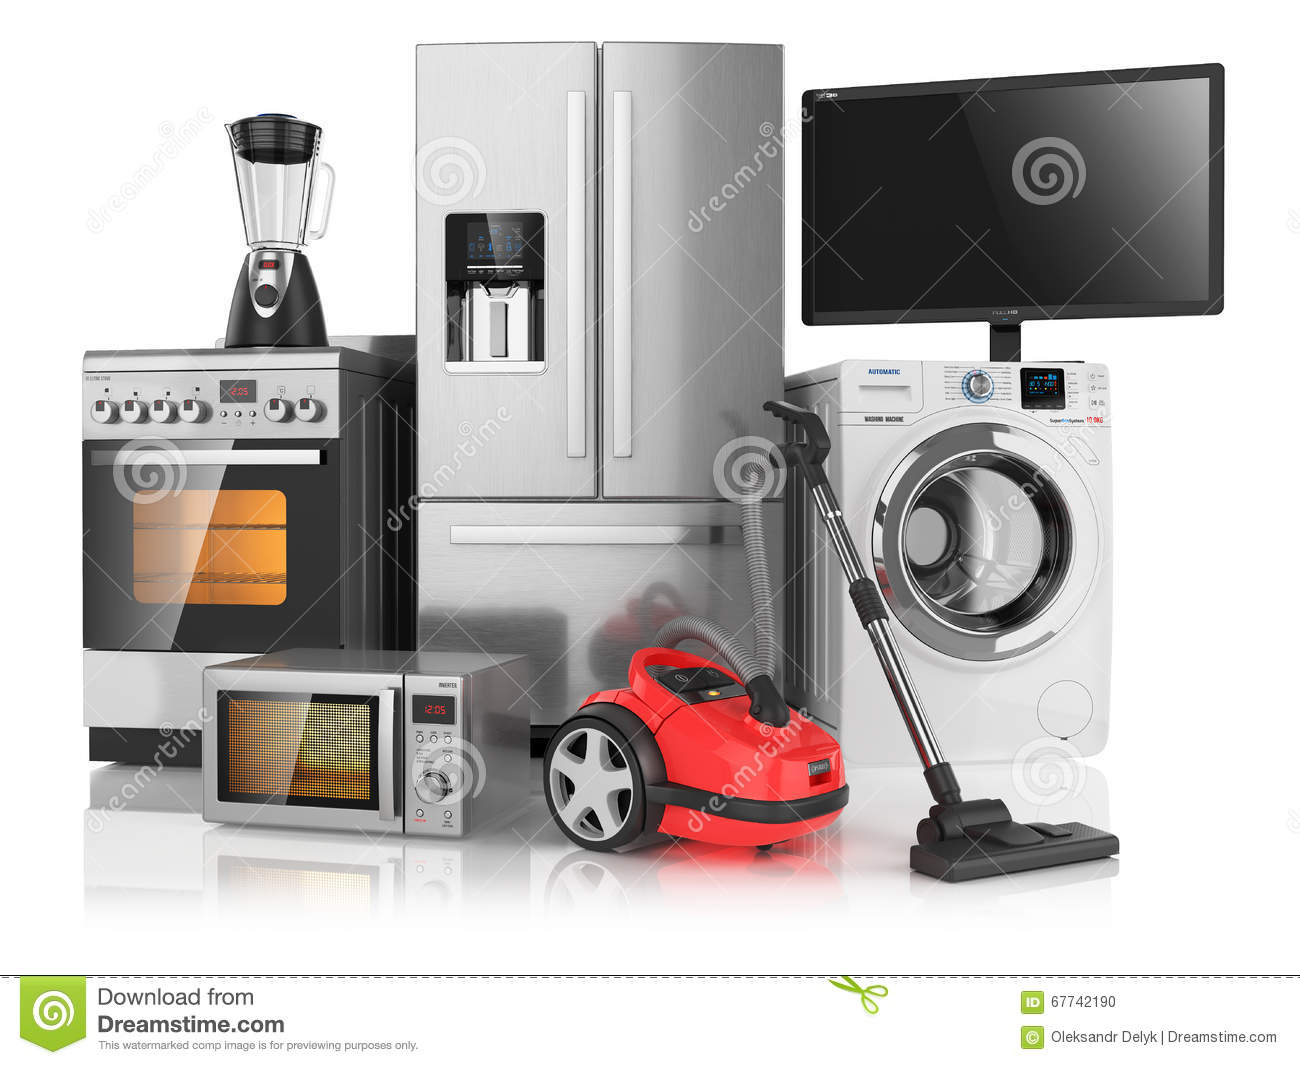 Uncategorized Household Kitchen Appliances set of household kitchen appliances stock illustration image appliances